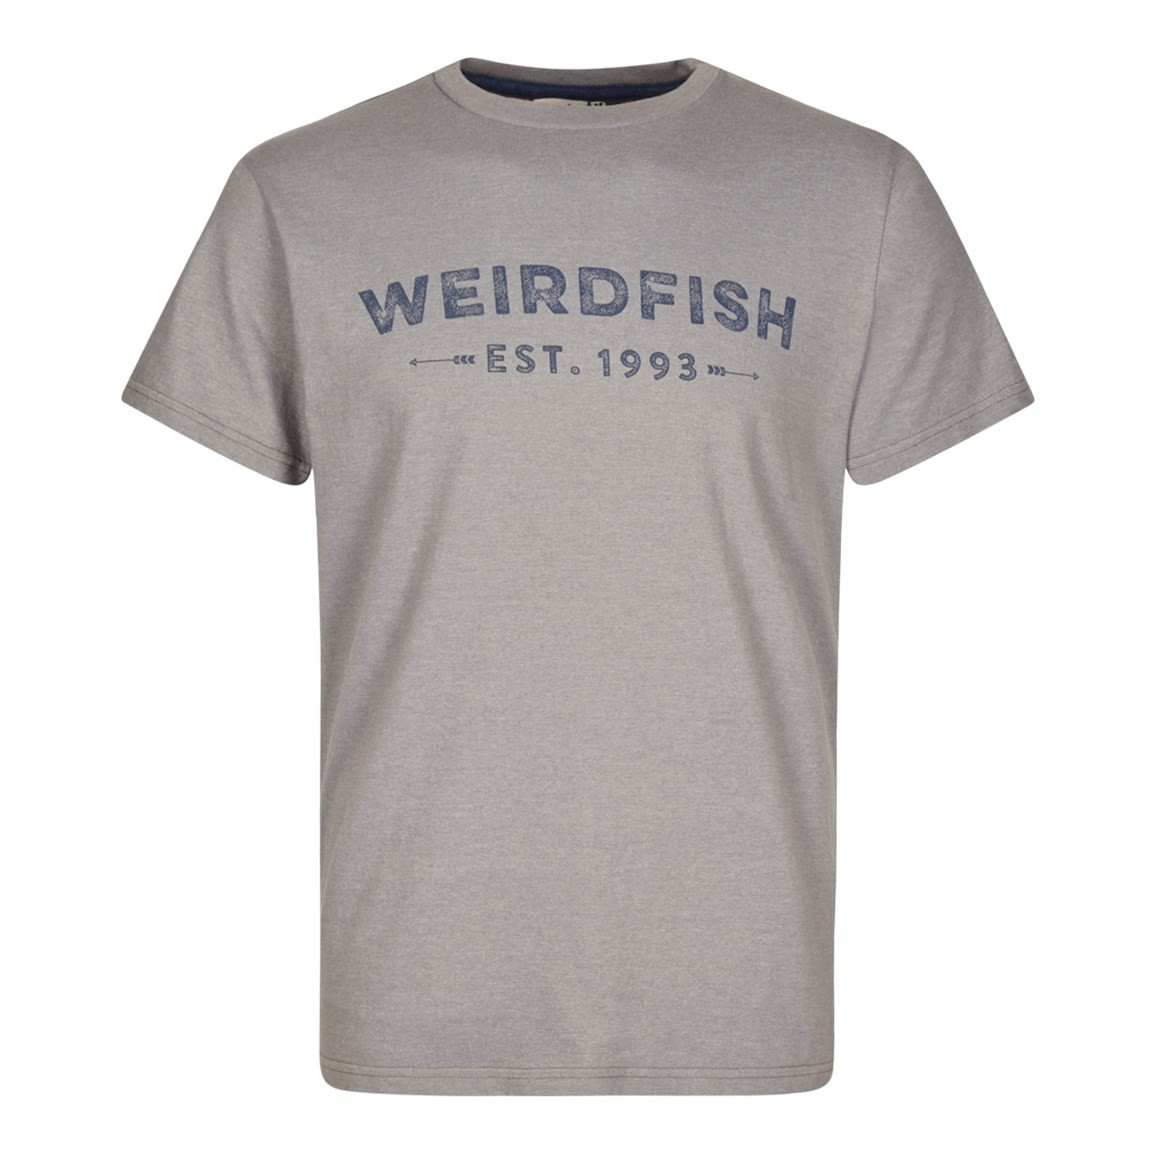 Weird Fish Yang Jersey Marl Graphic Print T-Shirt Frost Grey